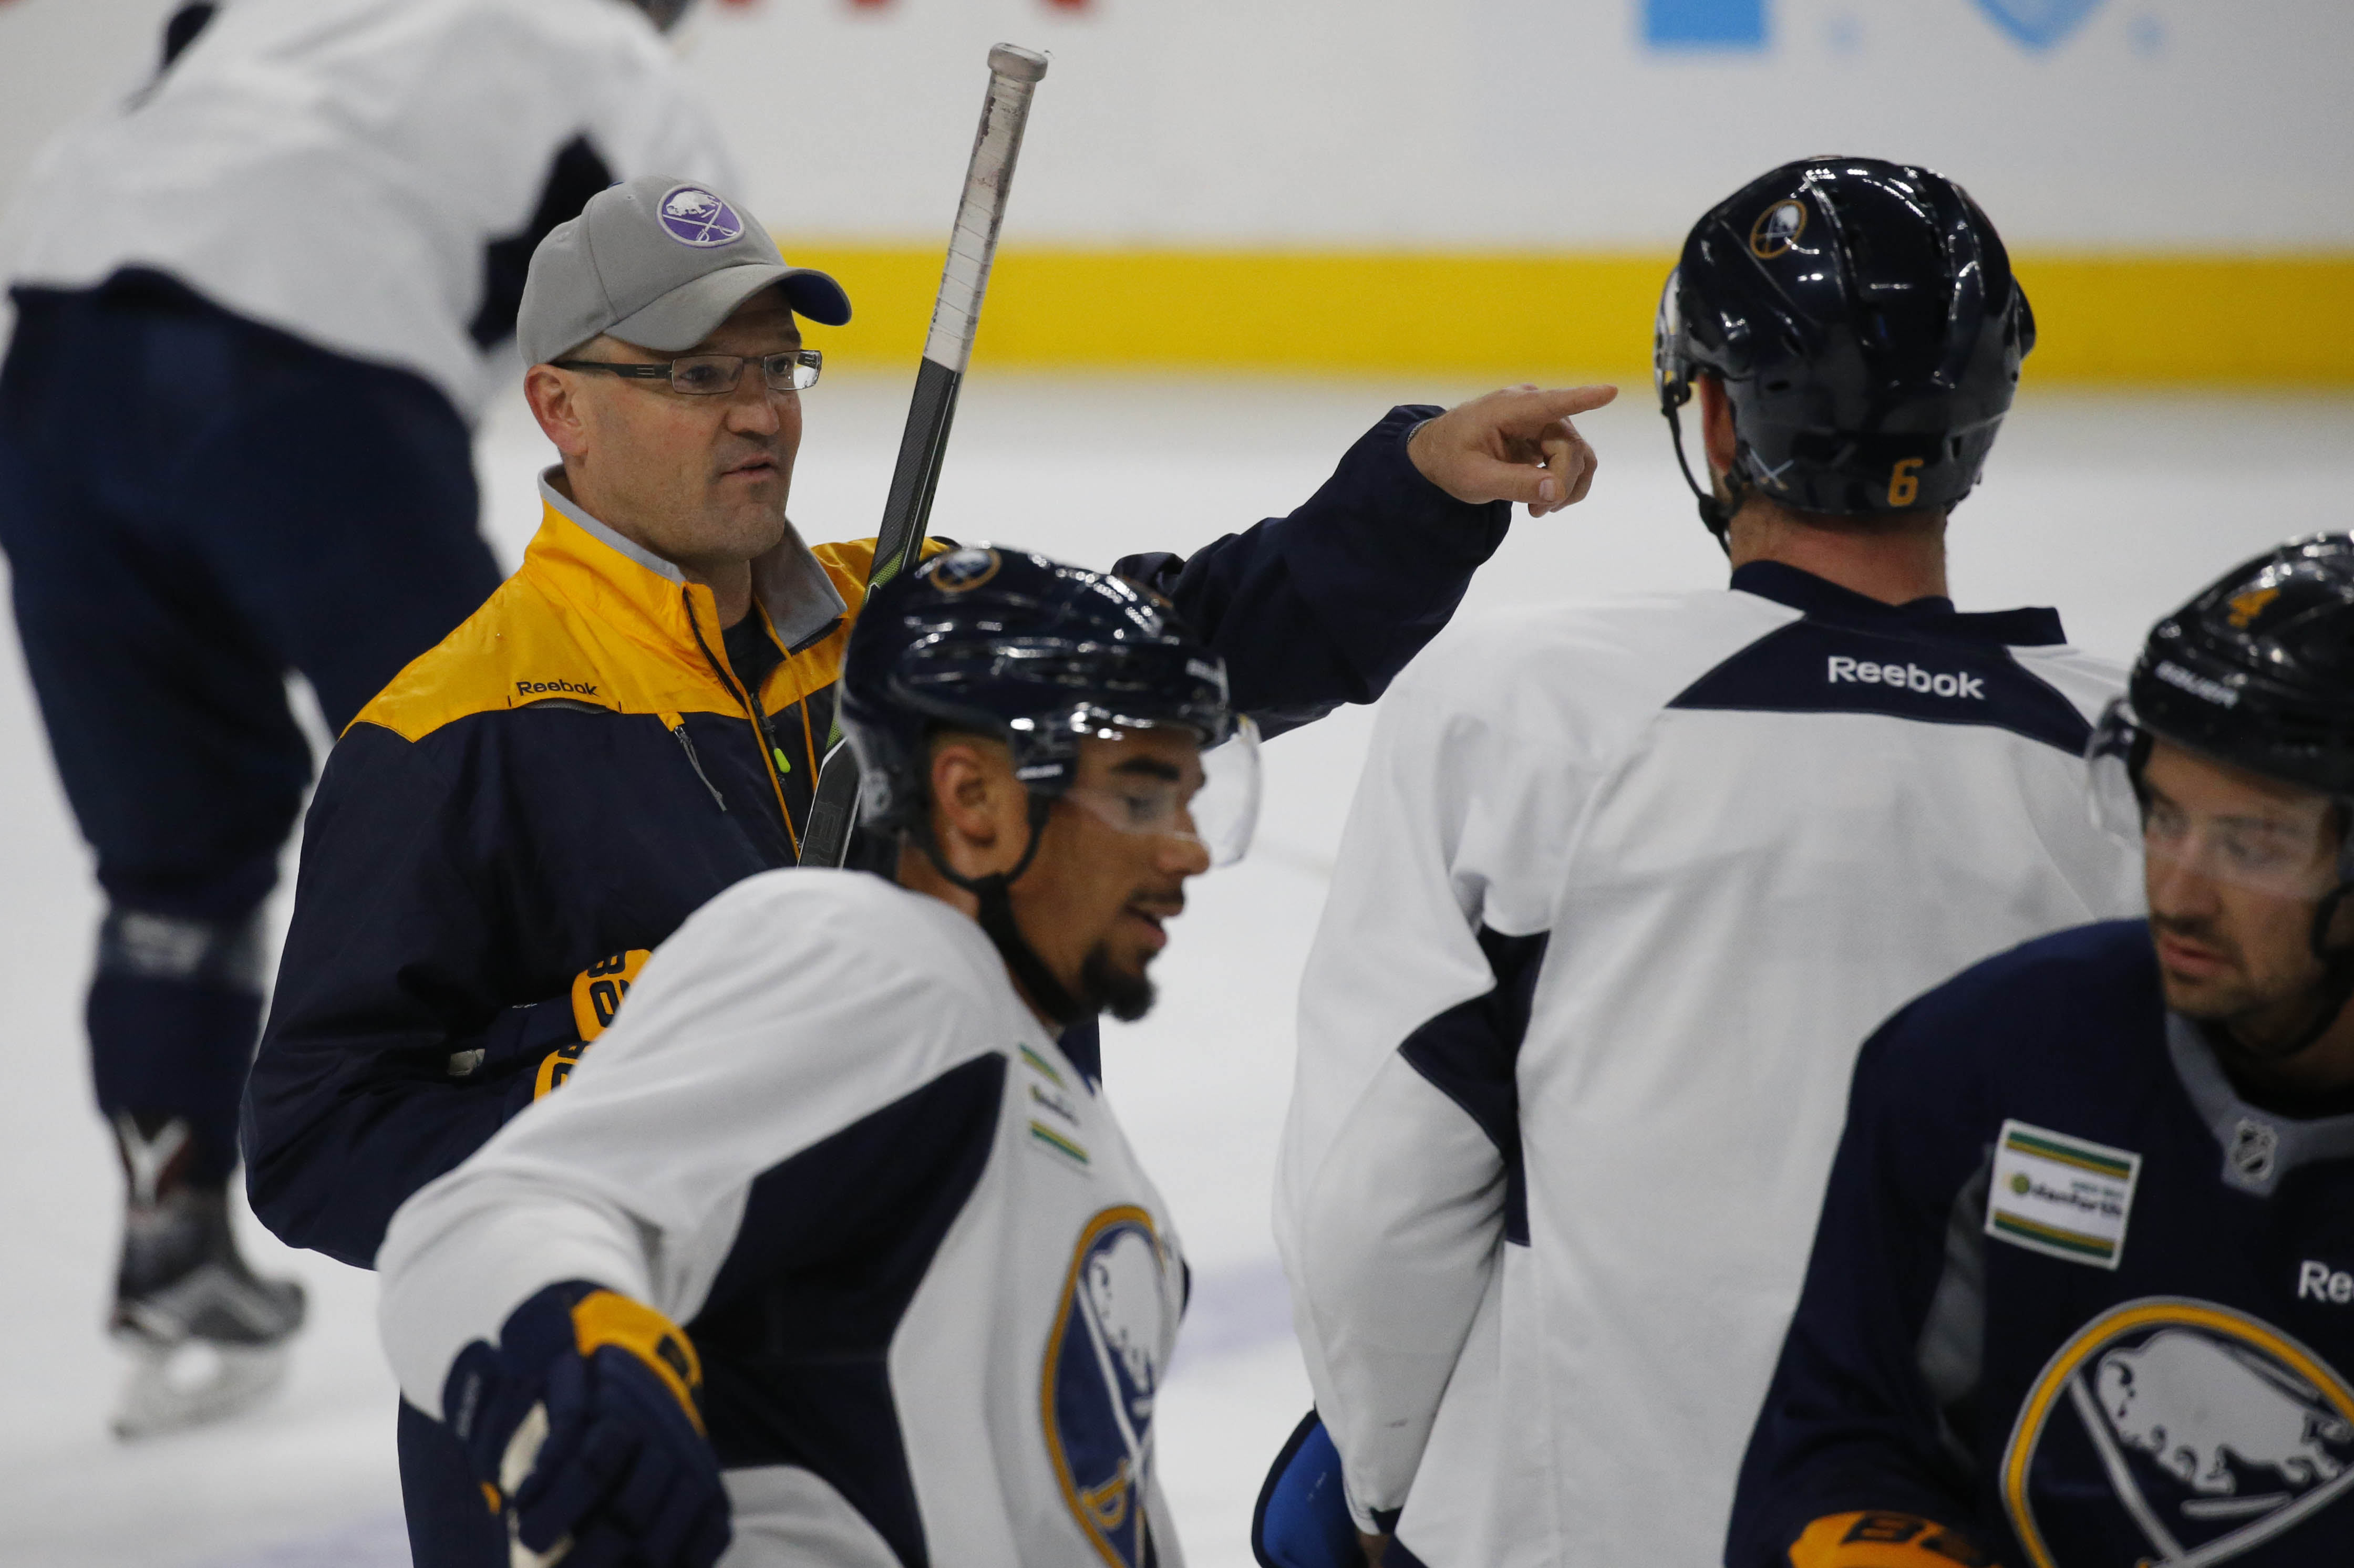 The Sabres' Dan Bylsma is passionate about coaching yet keeps an even keel. (Derek Gee/Buffalo News)